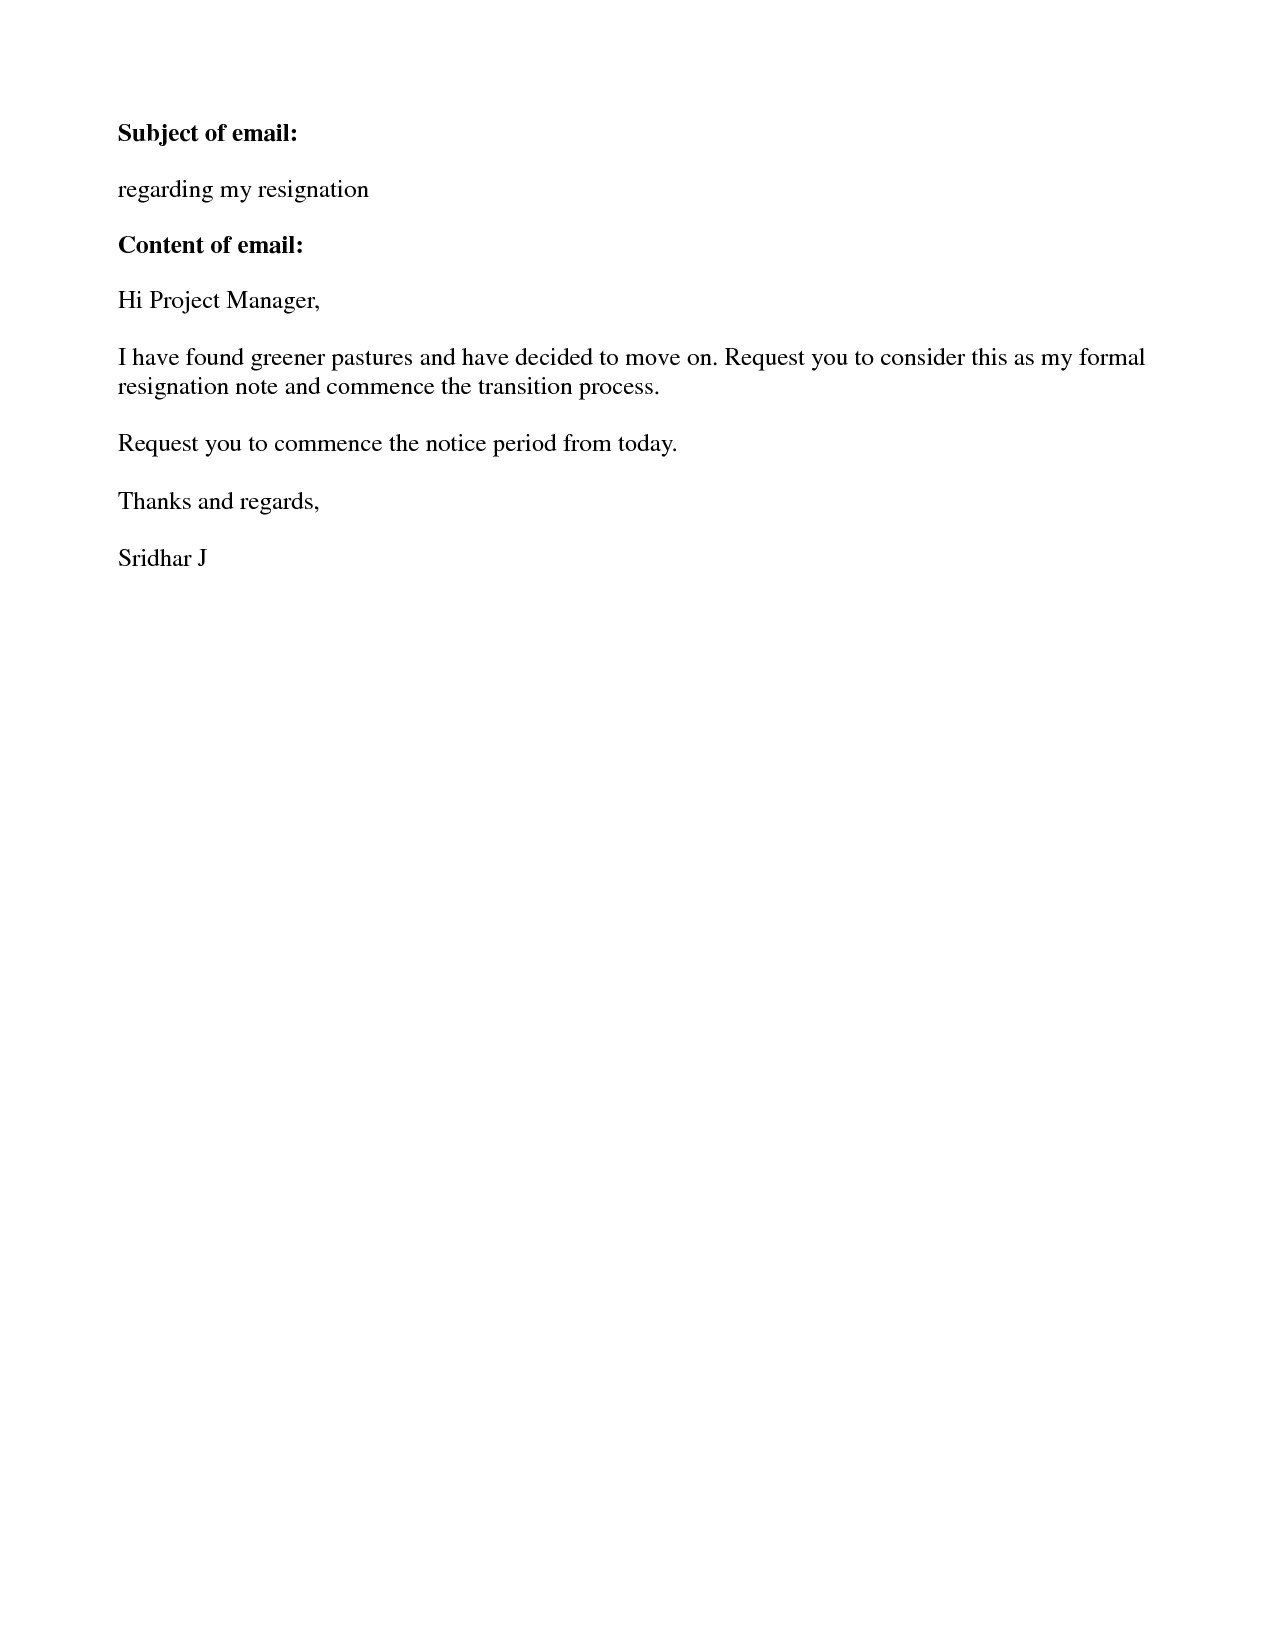 short cover letter samples mt home arts resume examples resignation format simple ideas Resume Short Resume Cover Letter Examples